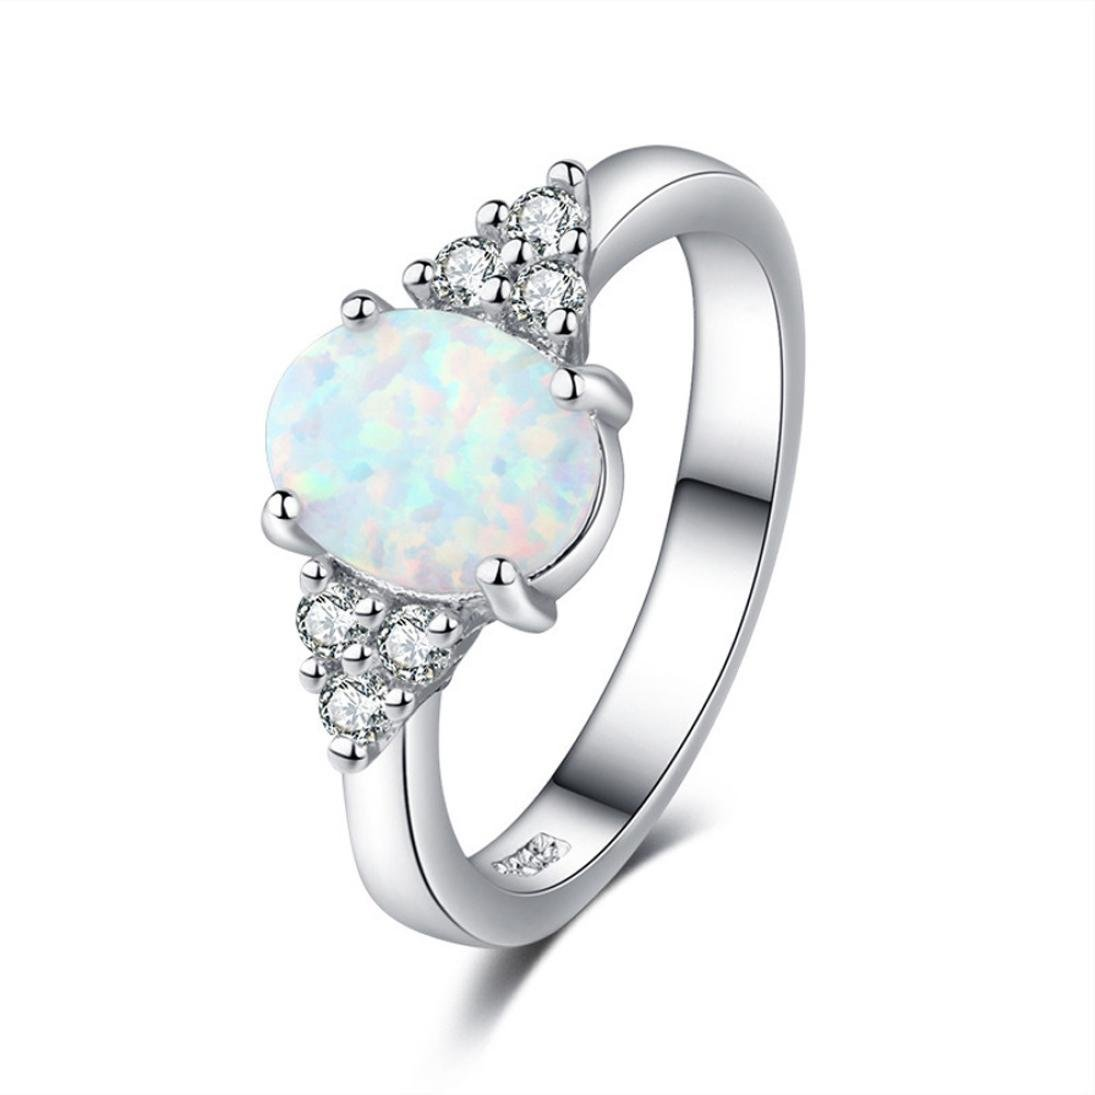 OldSch001 Women's Fashion Oval Opal Ring White Stone Band Rings Jewelry (Silver, 7)